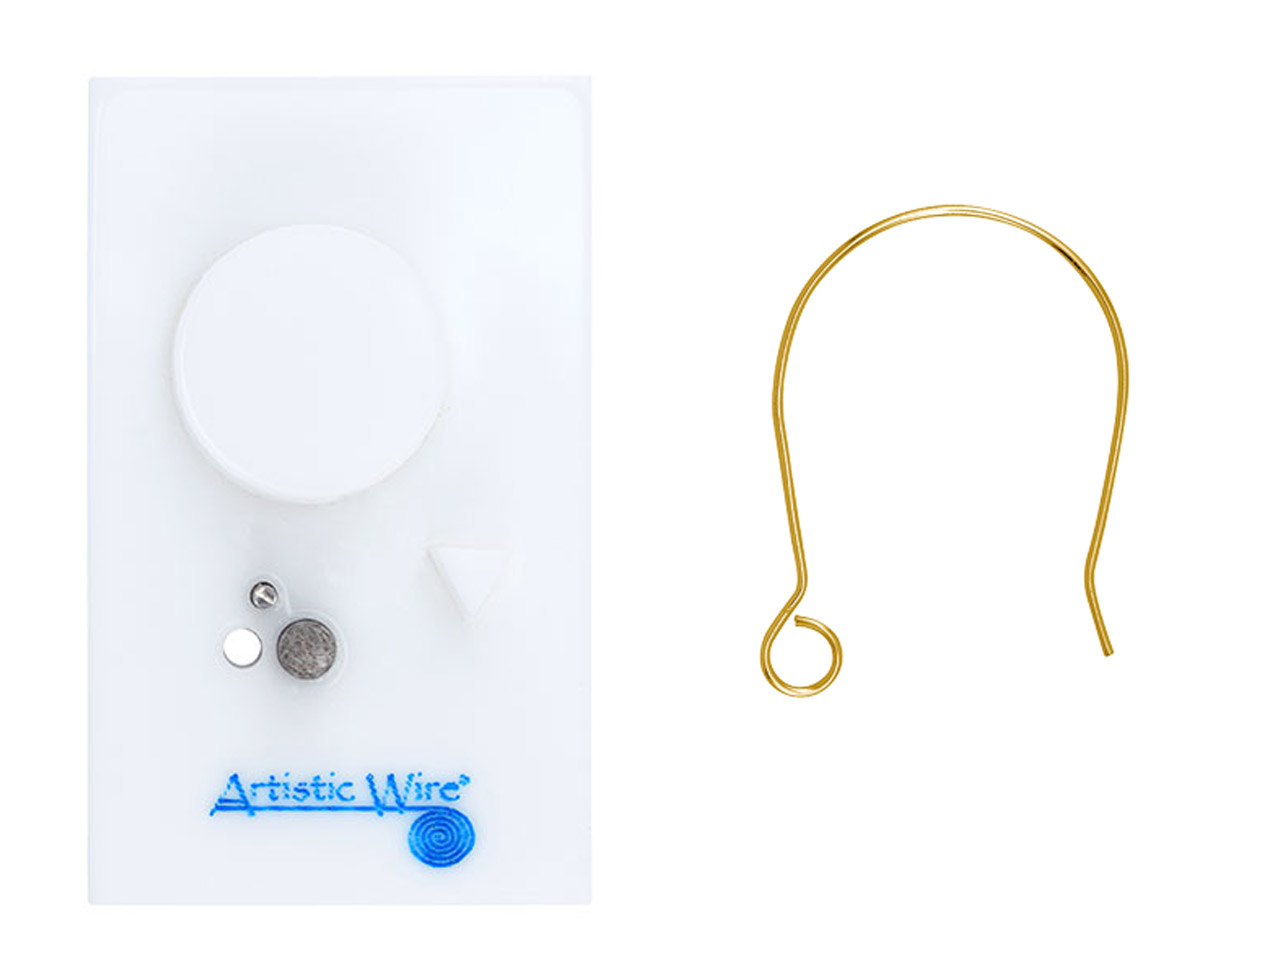 Beadalon Artistic Wire Findings    Forms Round Ear Wire Jig